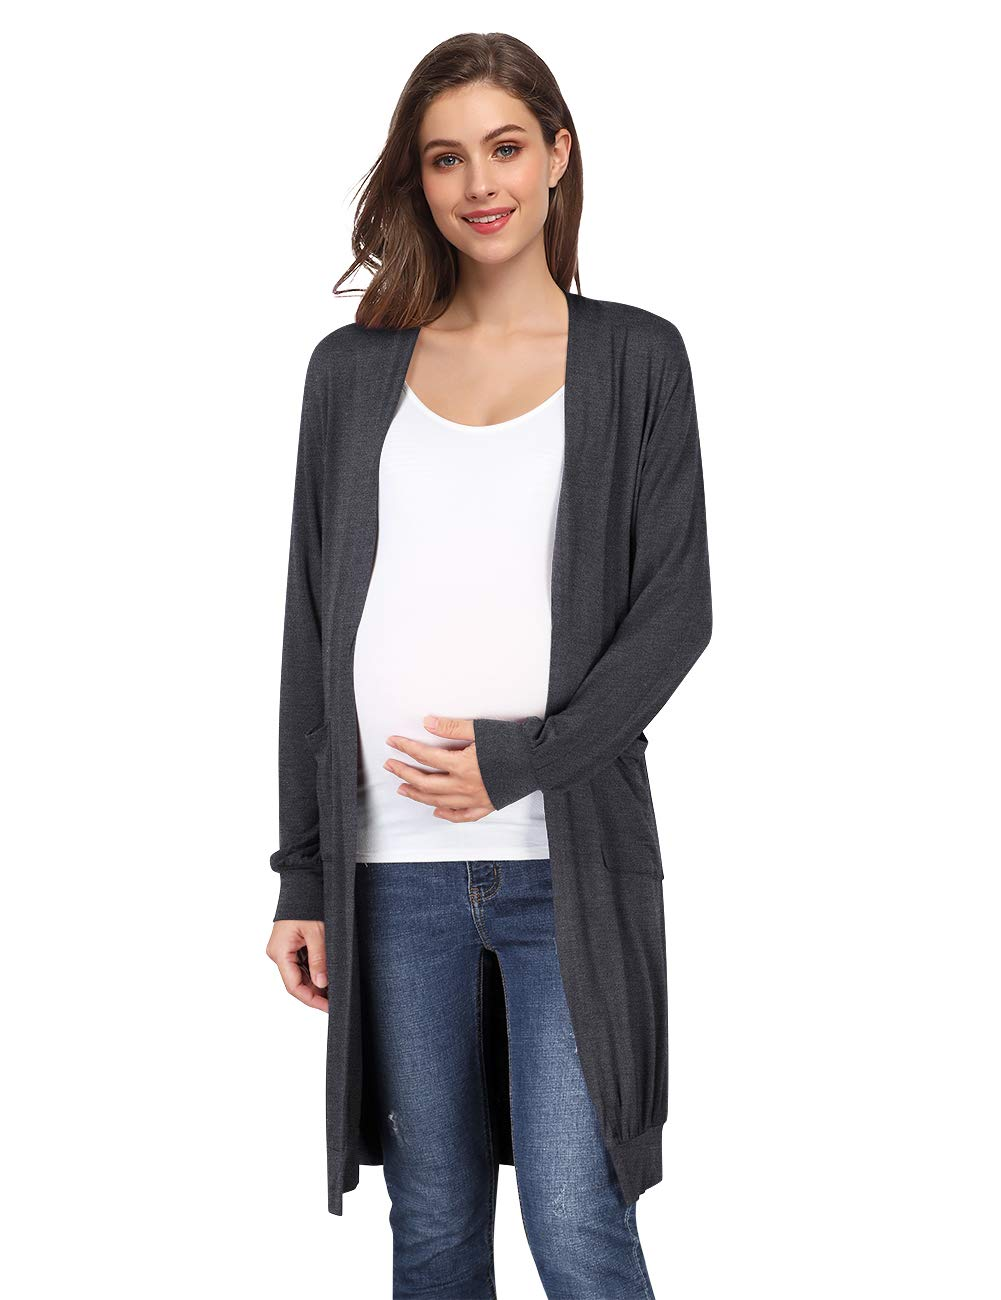 Coolmee Women's Maternity Cardigan Long Sleeve Lightweight Casual Cardigan with Pockets Grey XL by Coolmee